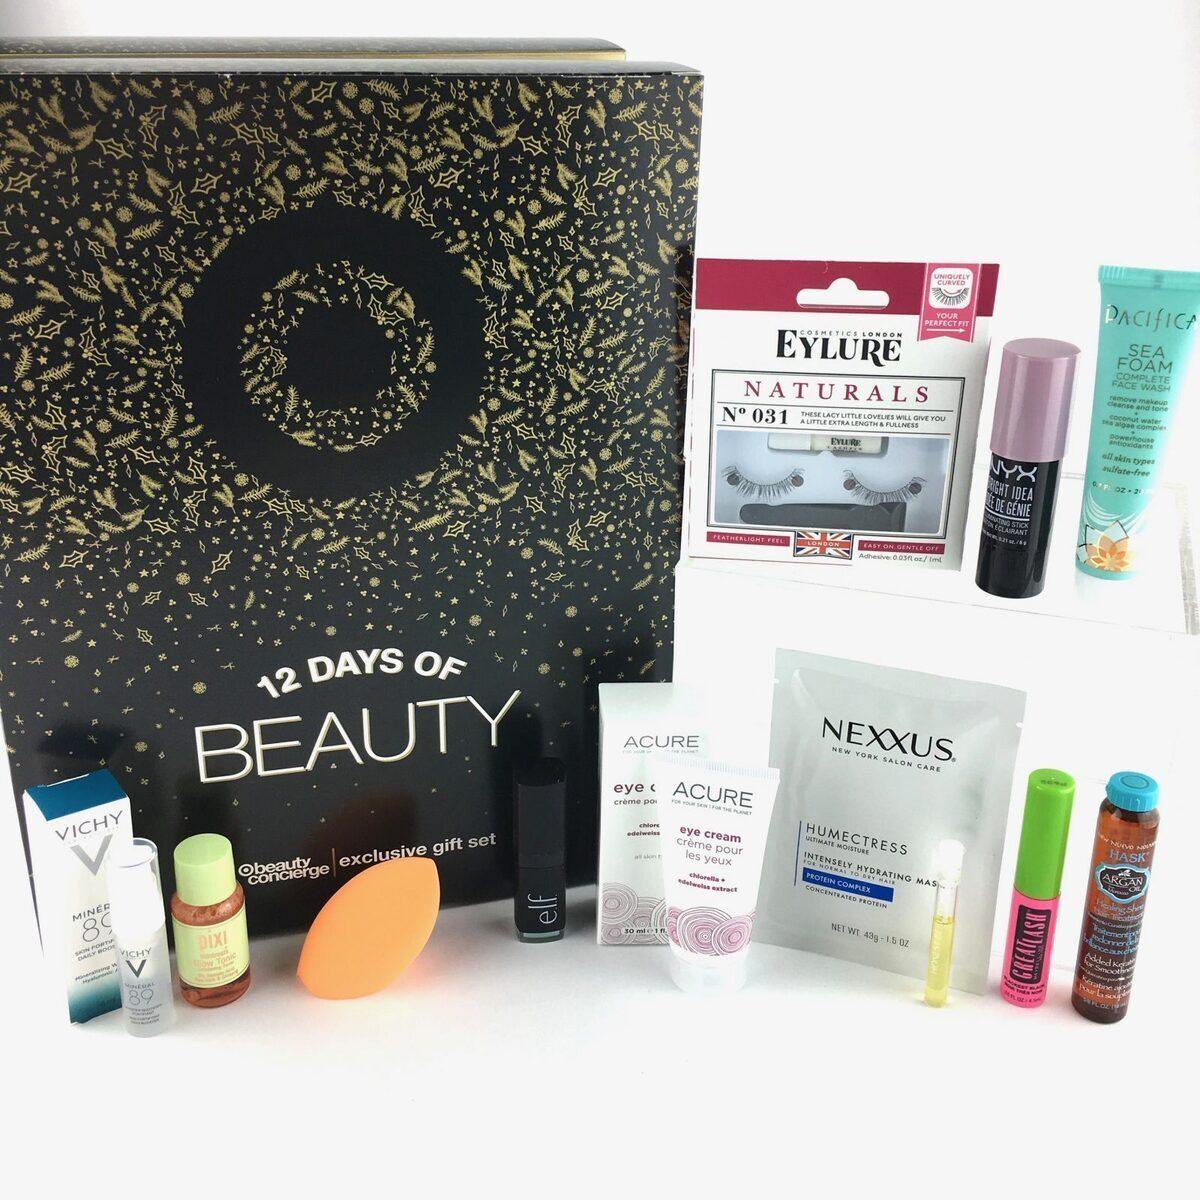 Target 12 Days of Beauty Advent Calendar Review + Giveaway (CLOSED)